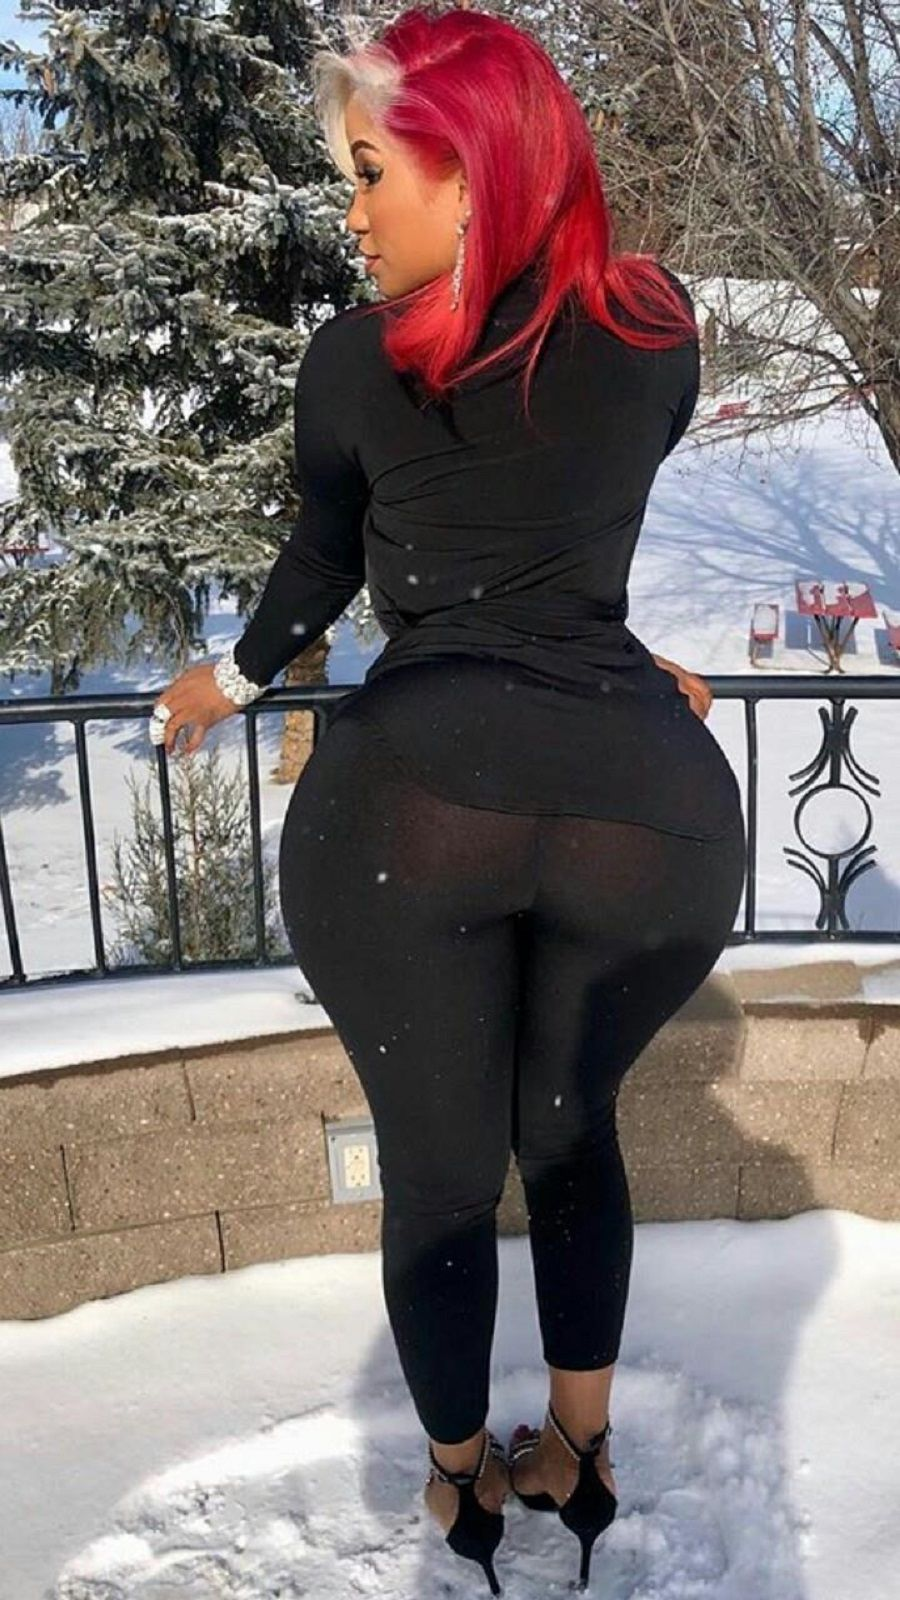 Big butt red head